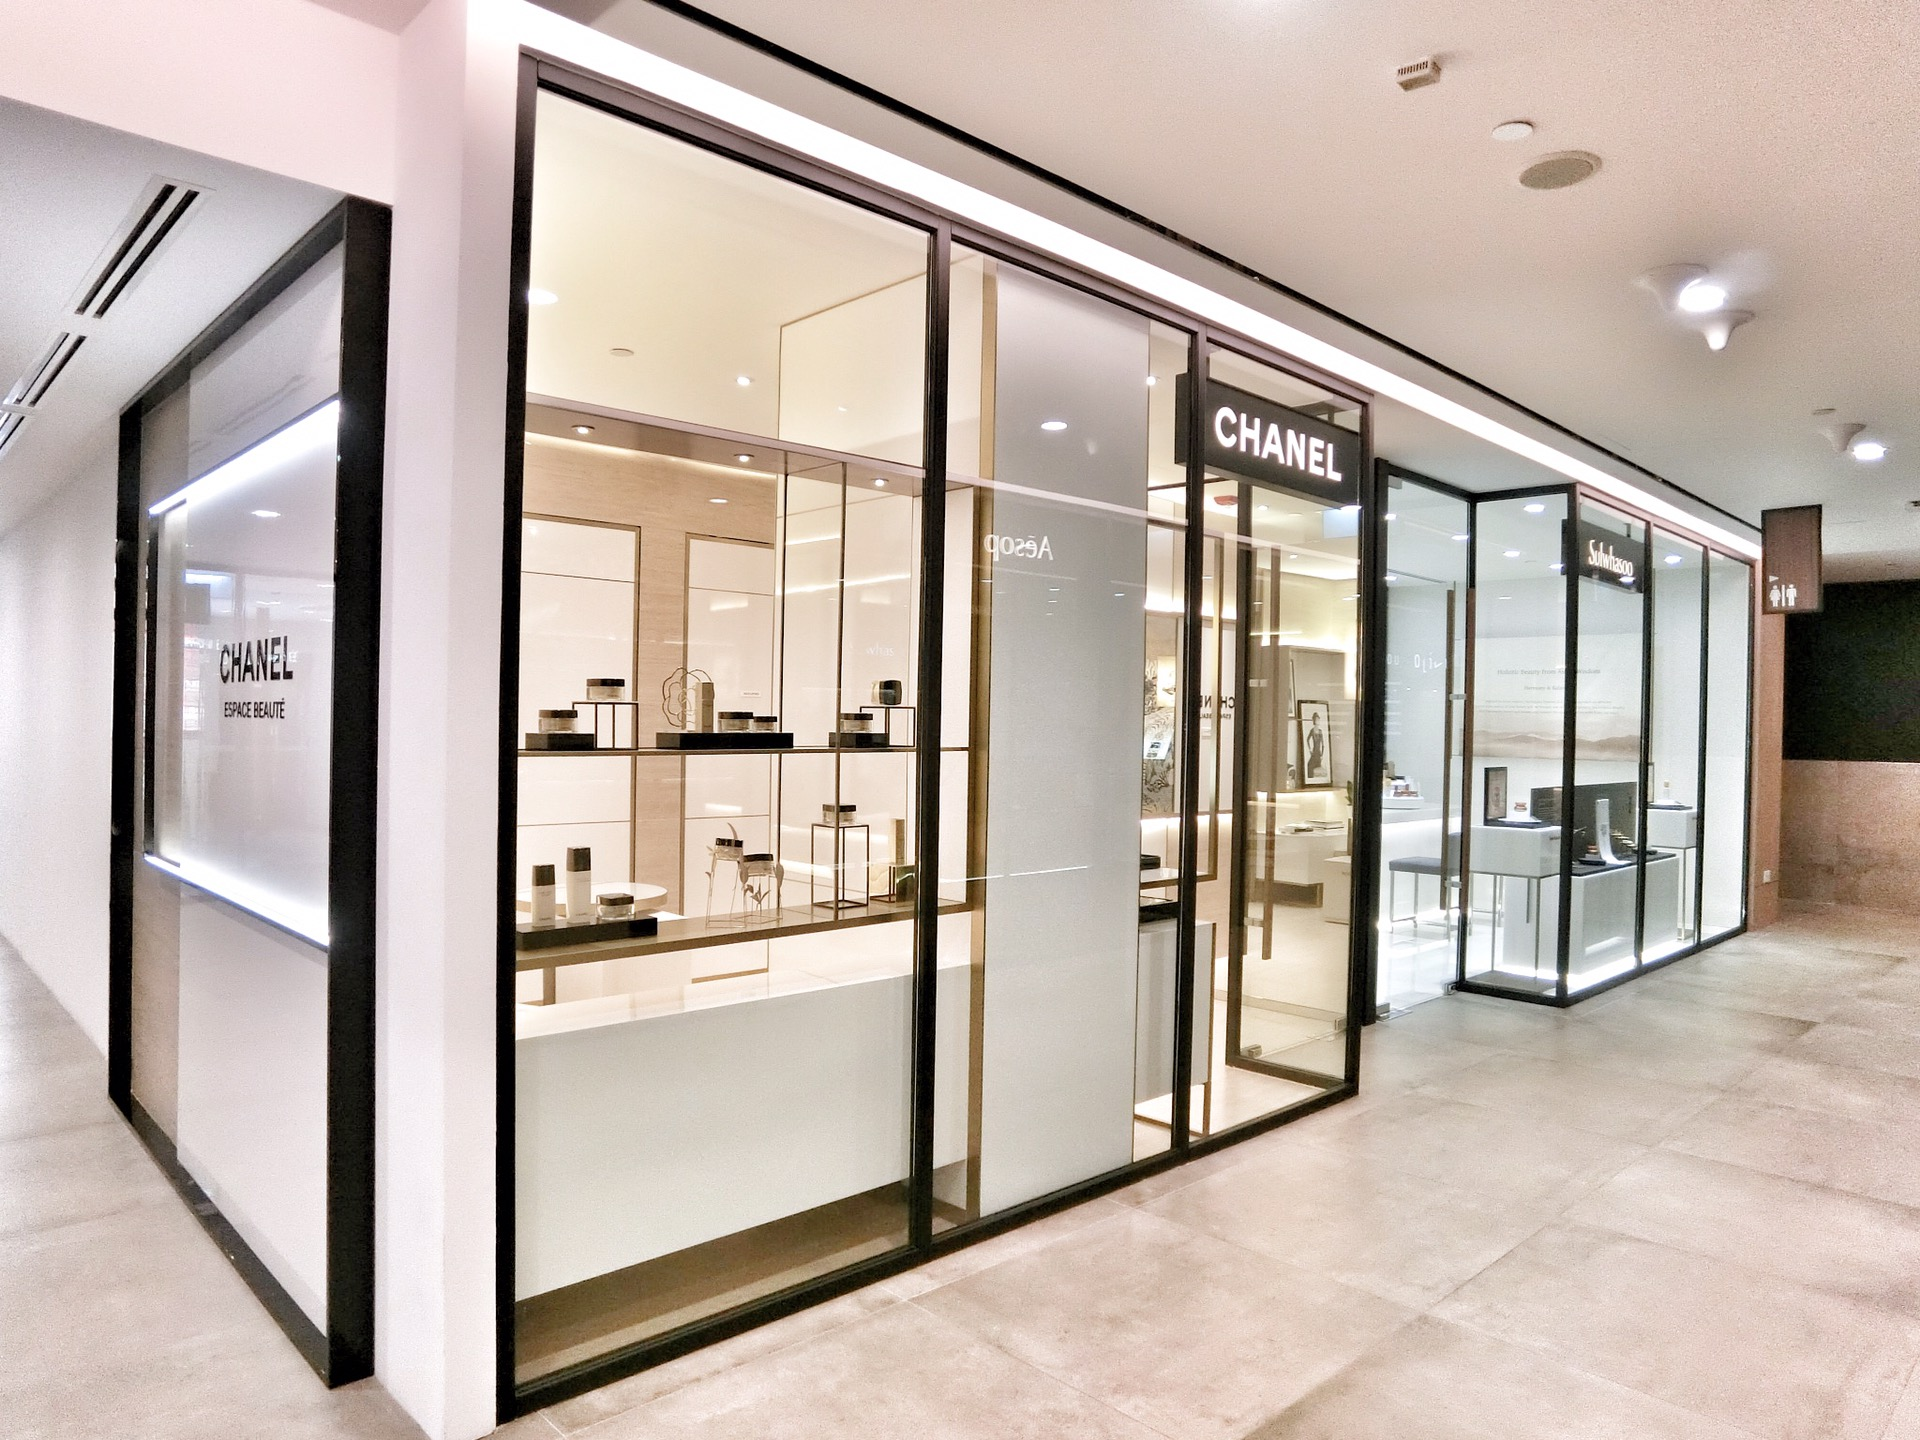 Three Cosmetics launches in Singapore at Tang Plaza, Orchard